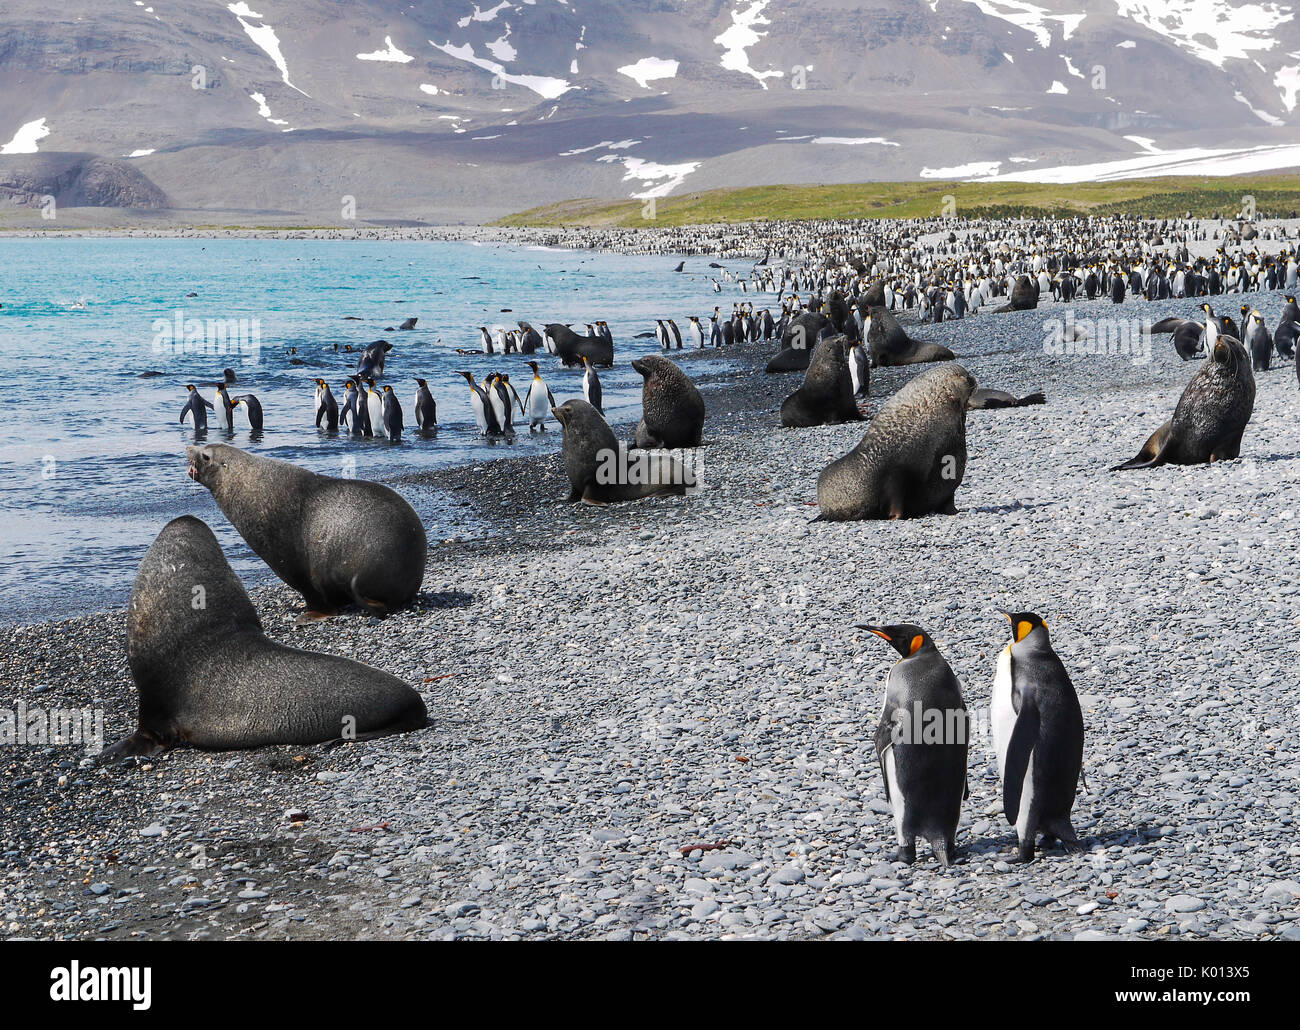 Colony of king penguins and fur seals together on rocky beach during mating season on South Georgia Island in the South Atlantic Ocean. - Stock Image